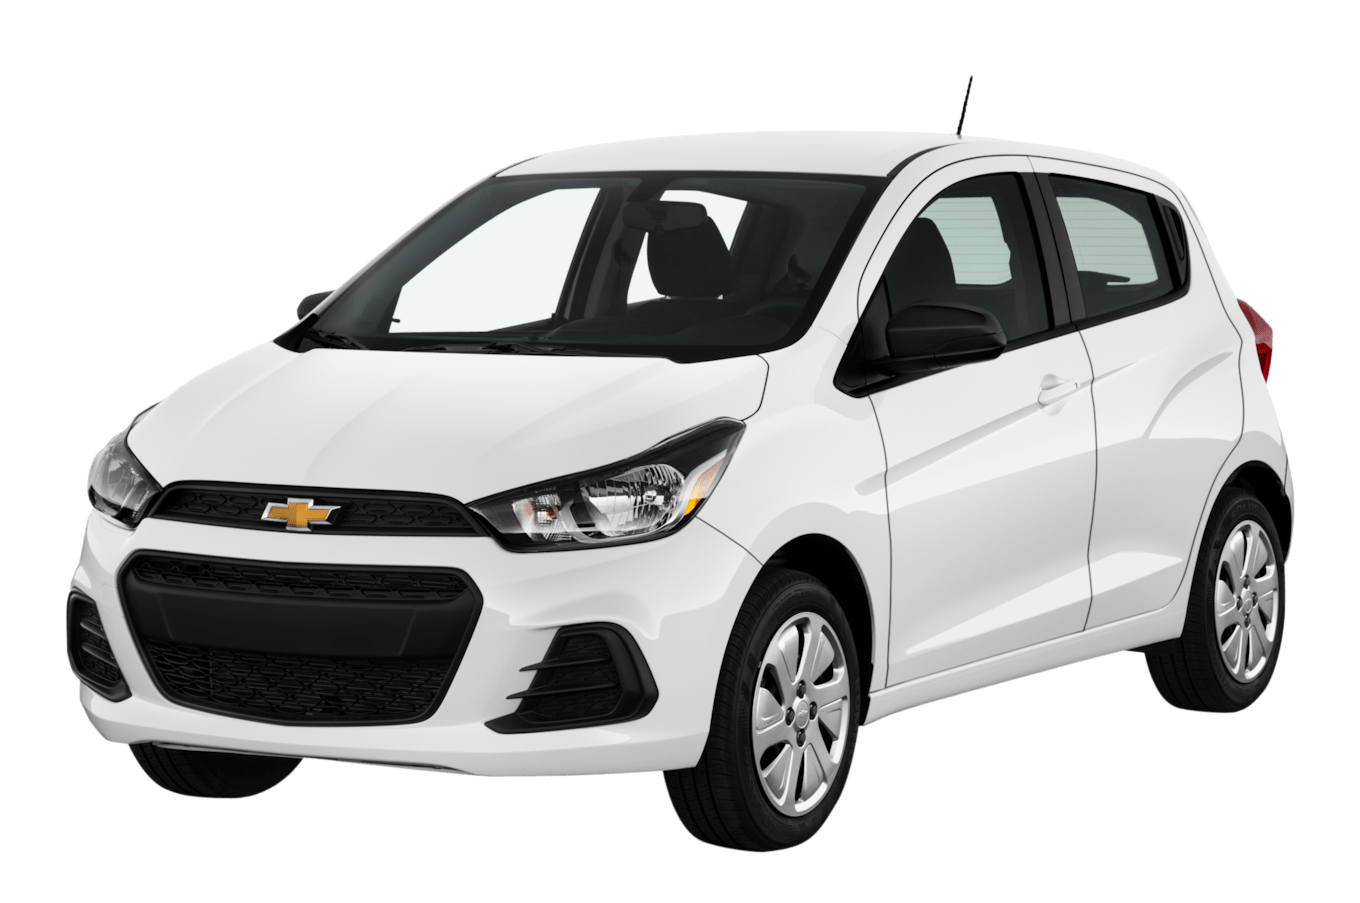 hight resolution of 2016 chevrolet spark ev reviews research spark ev prices specs motortrend